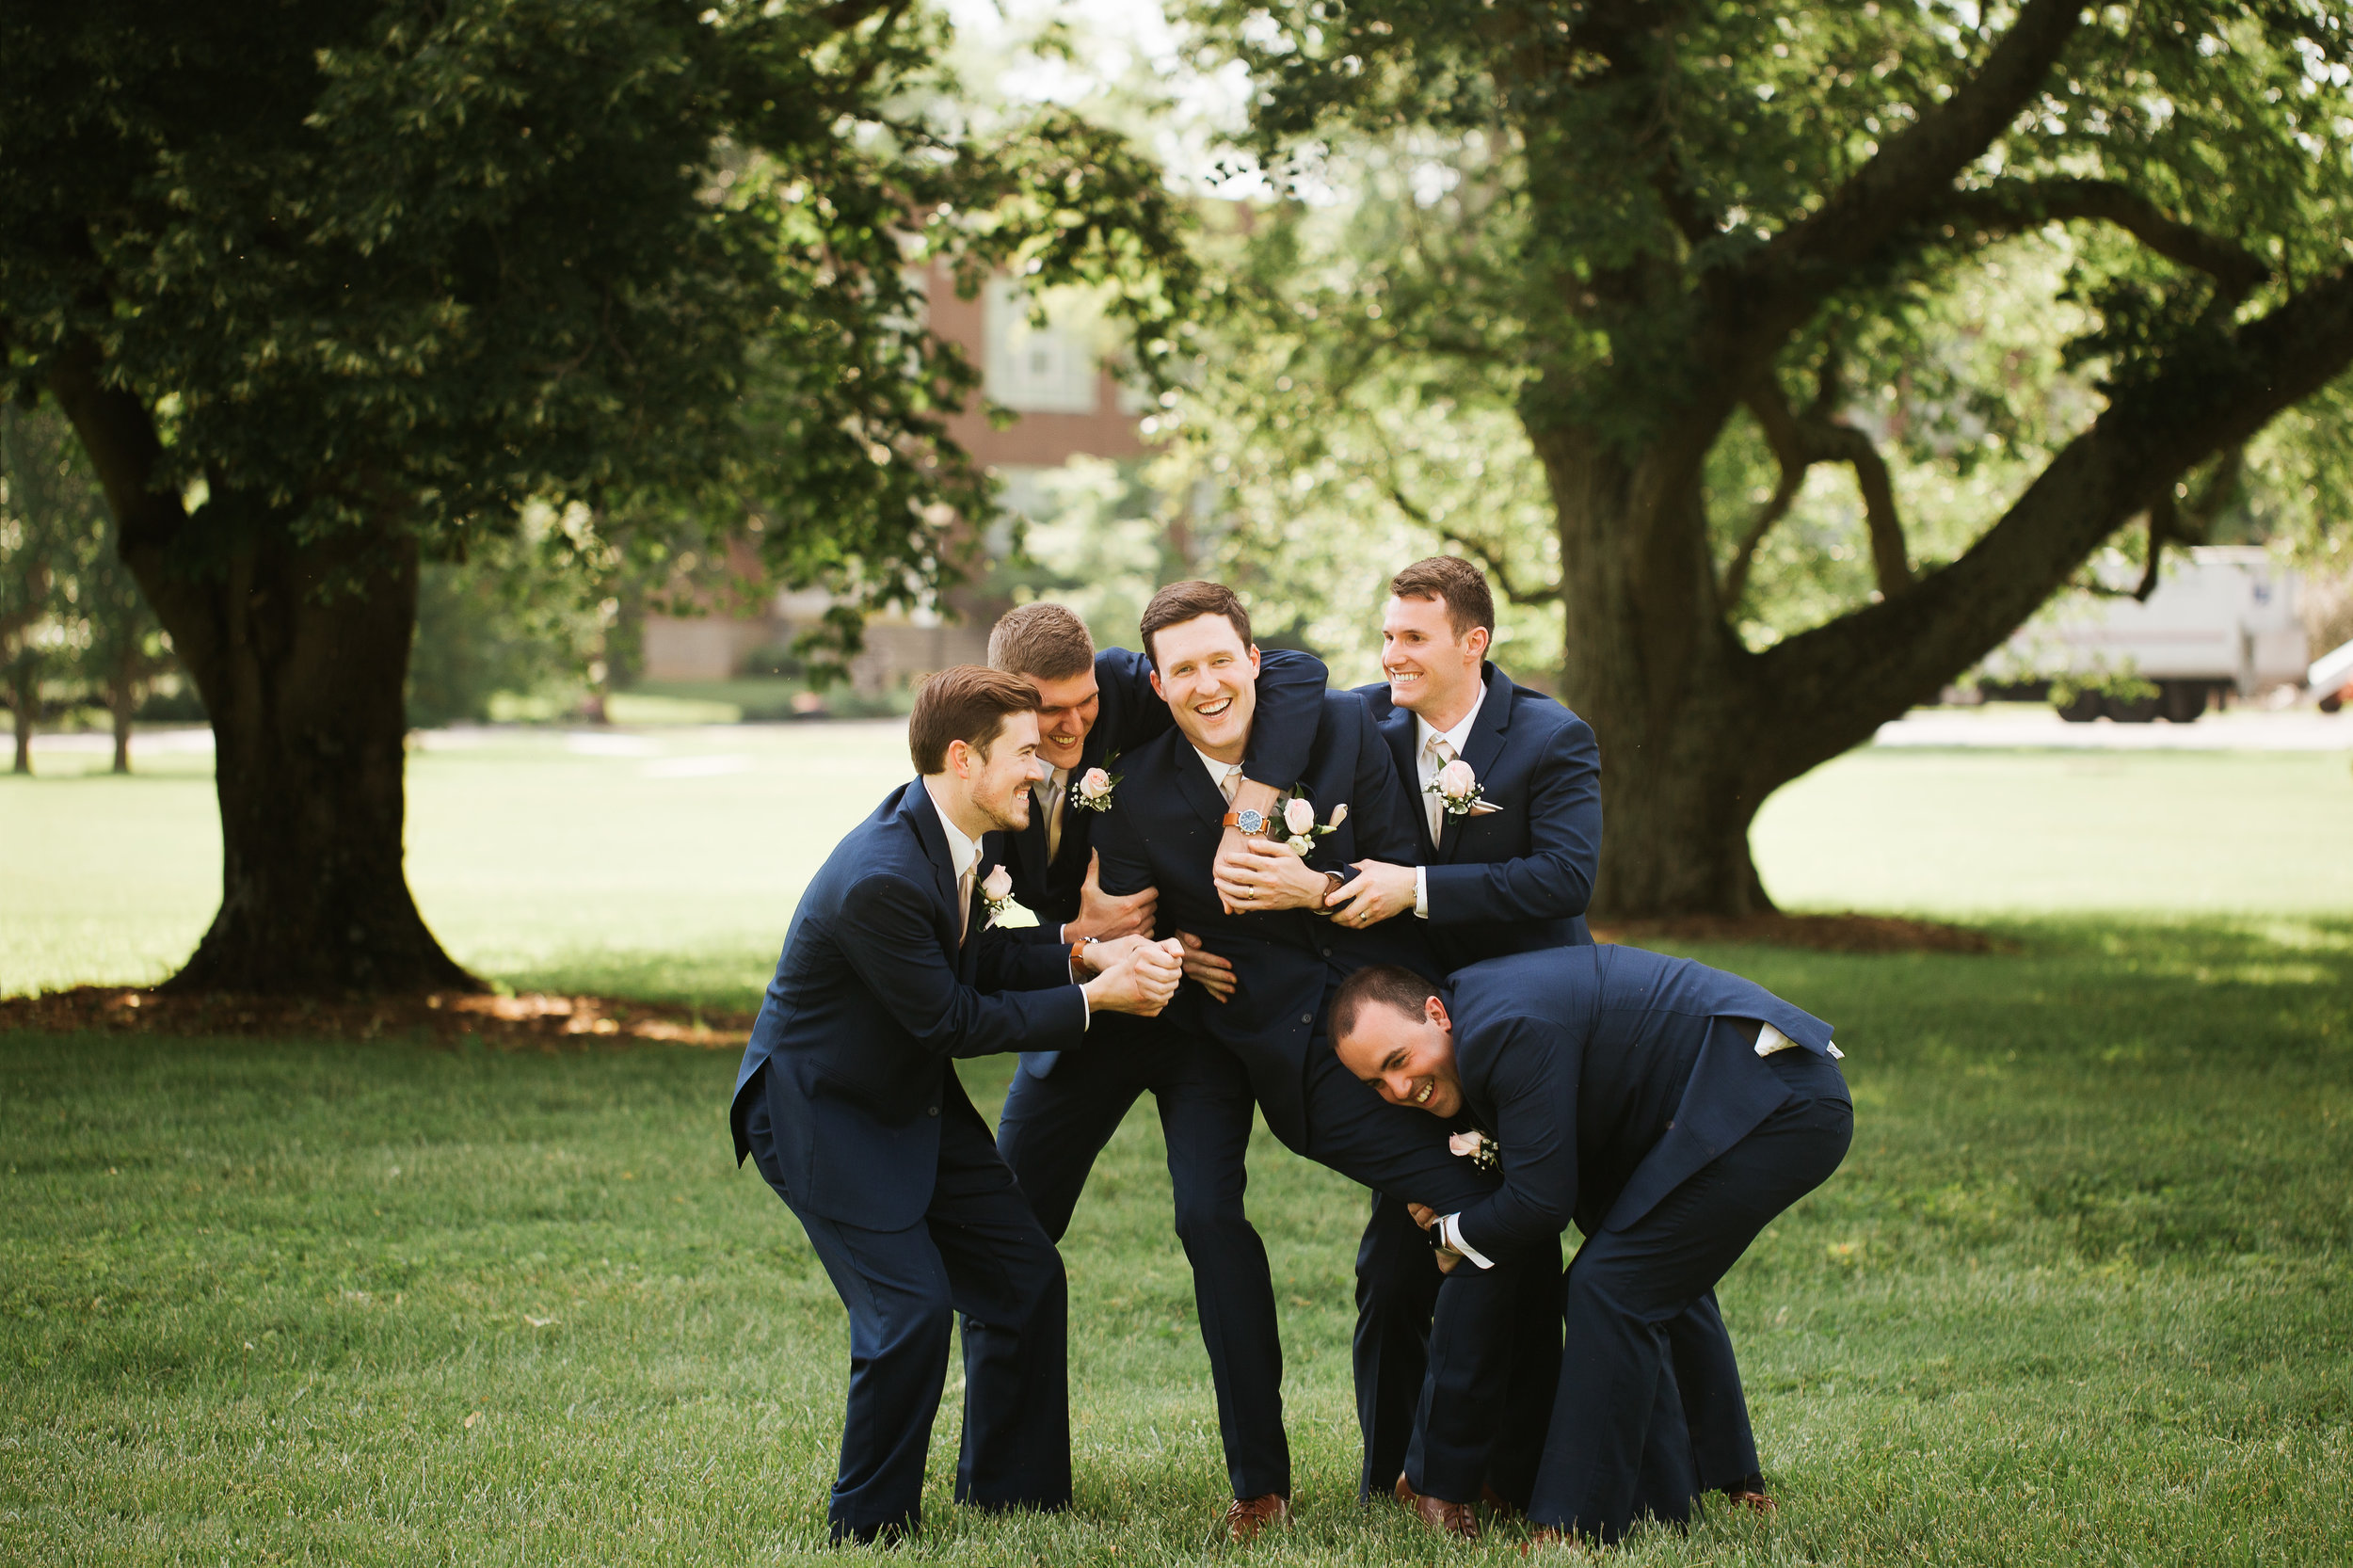 Sydney + Hunter - Bridal Party-69.jpg